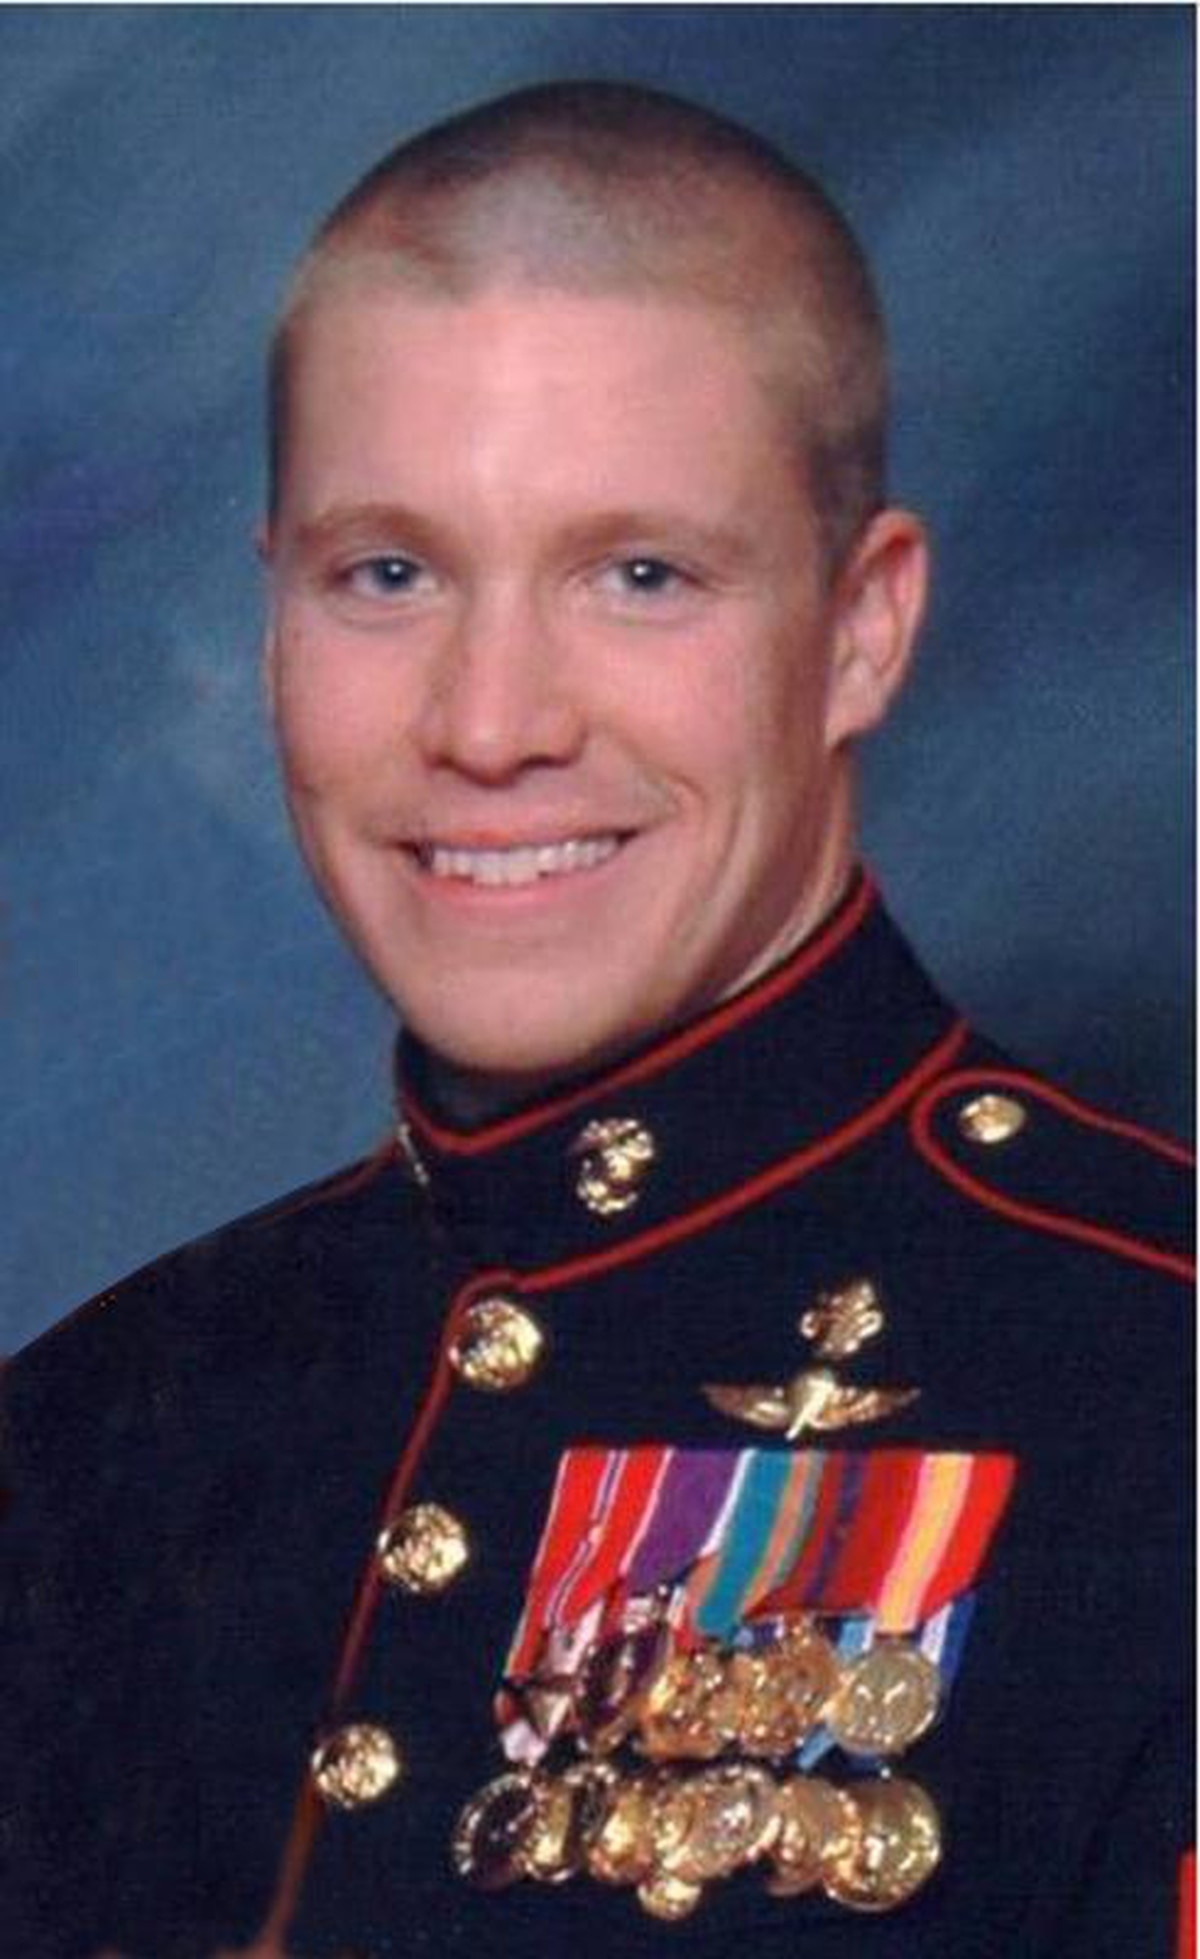 marsoc gunnery sergeant to receive posthumous silver star